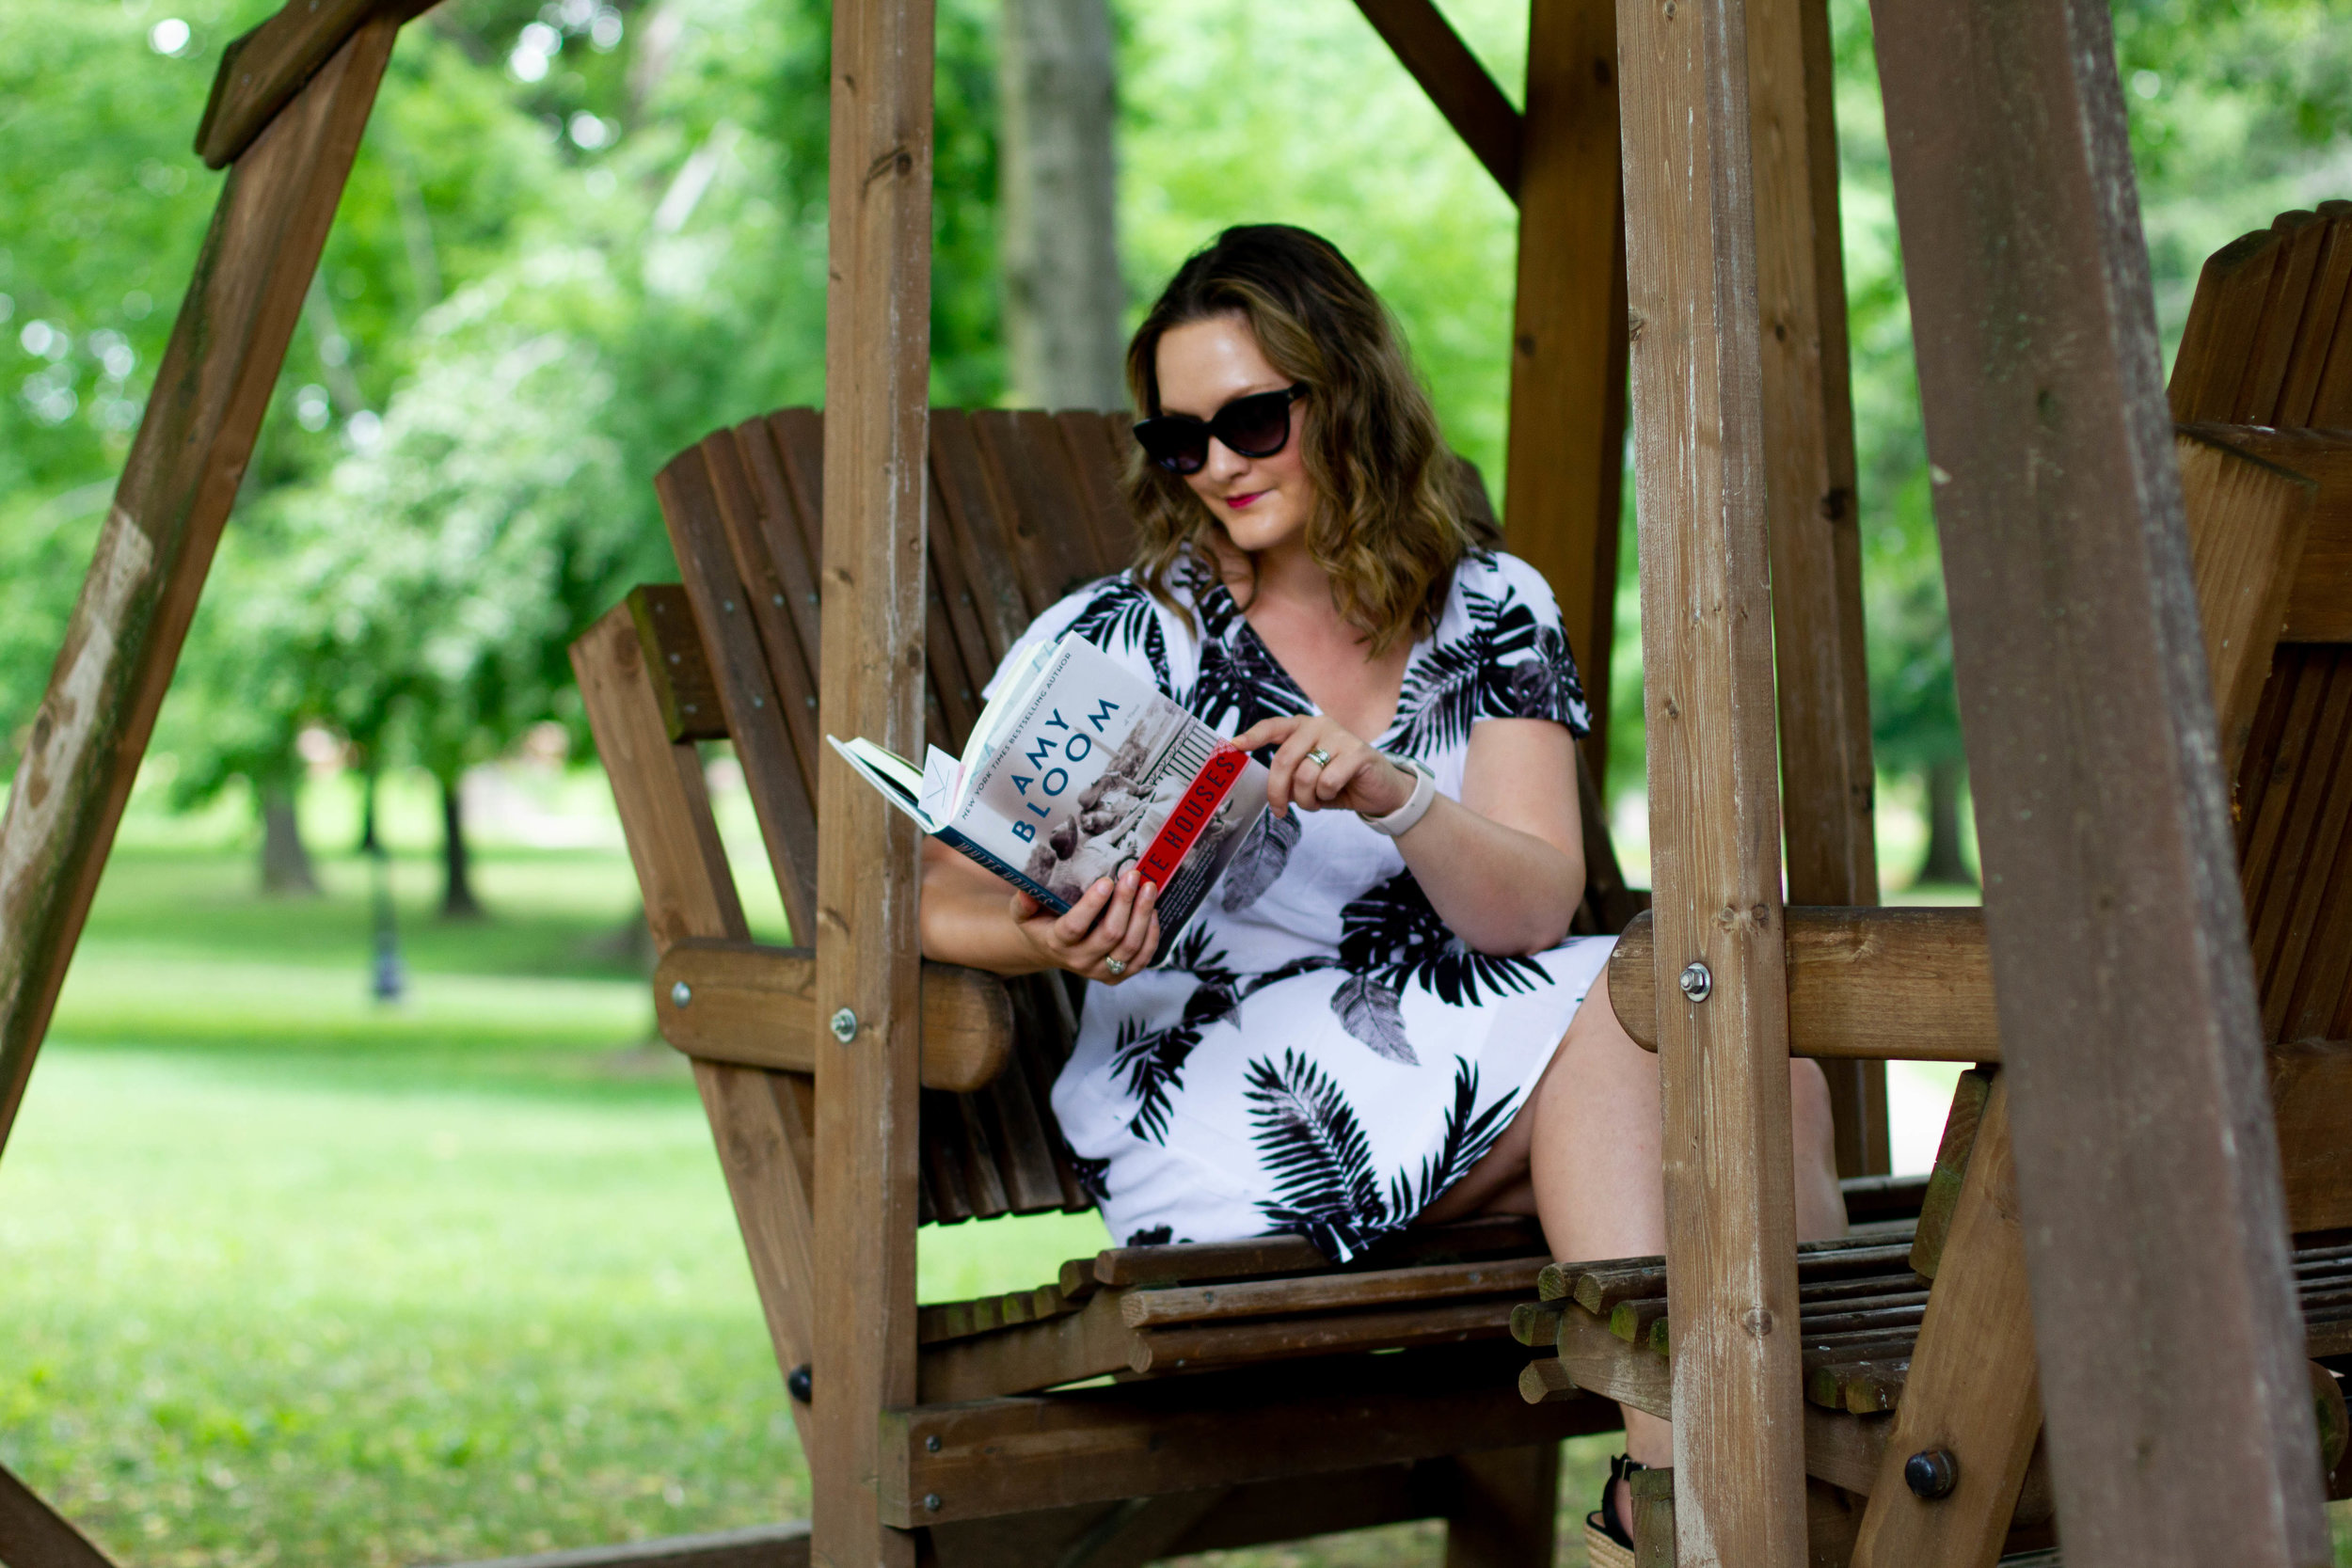 Reading White Houses by Amy Bloom at Lindenwood University in St. Charles, MO